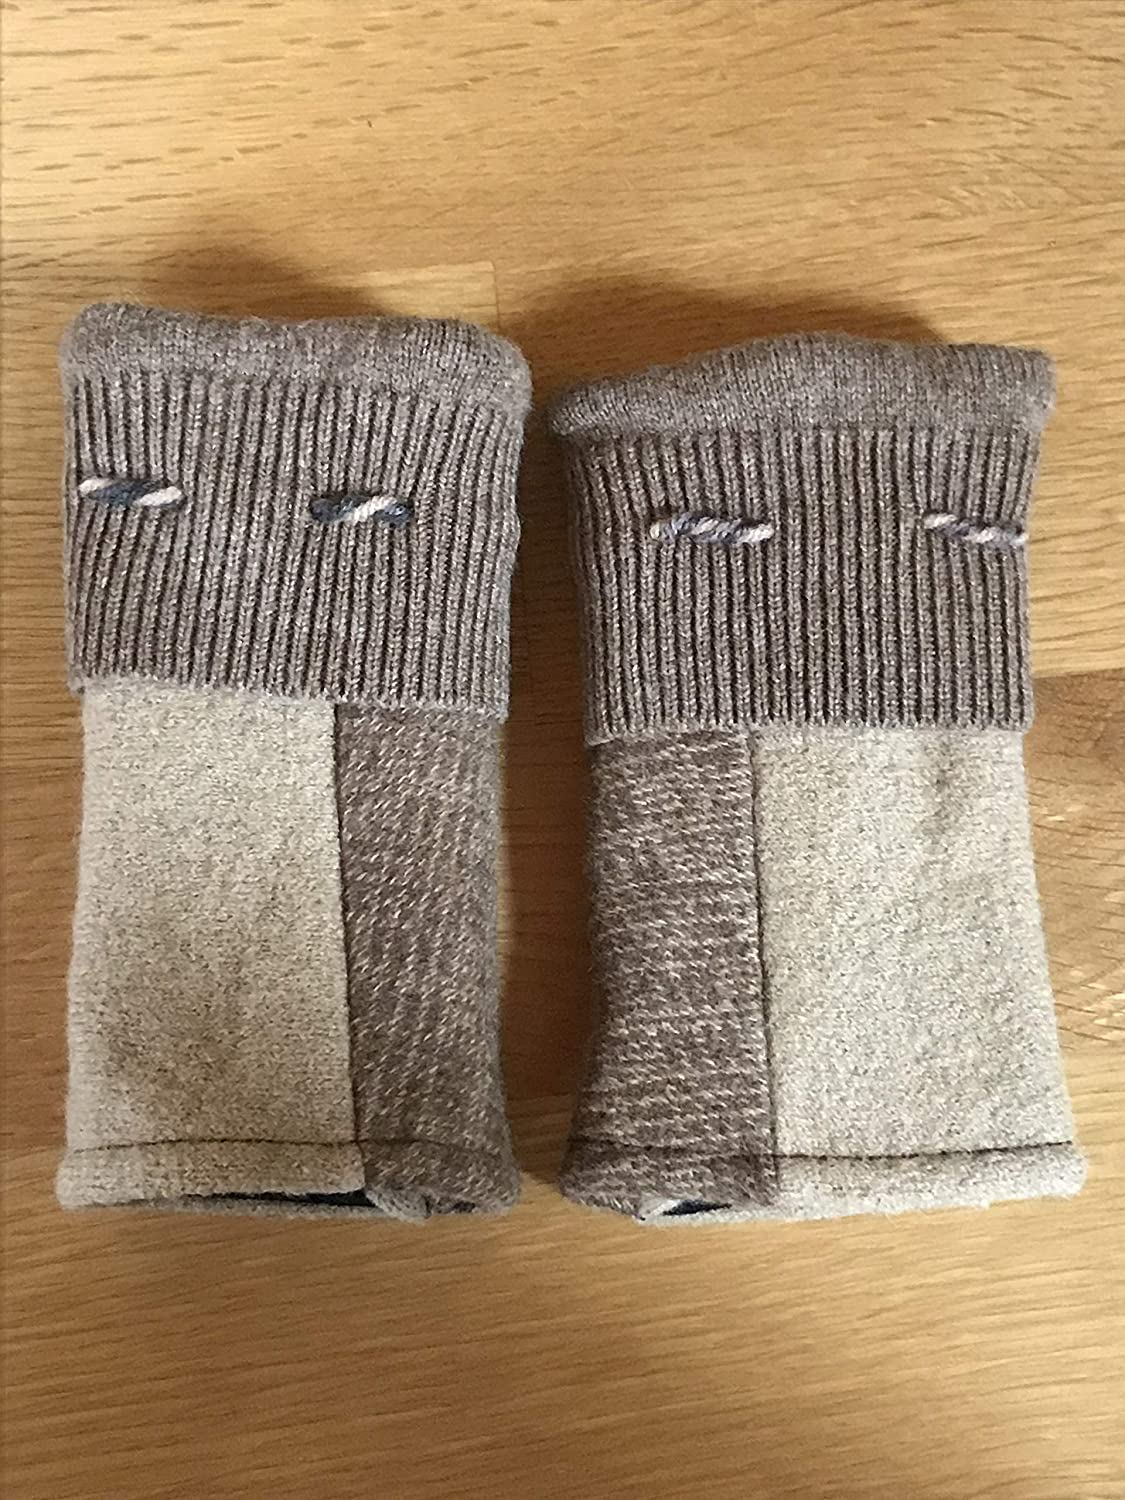 Testing Lowest price challenge Mittens Max 46% OFF